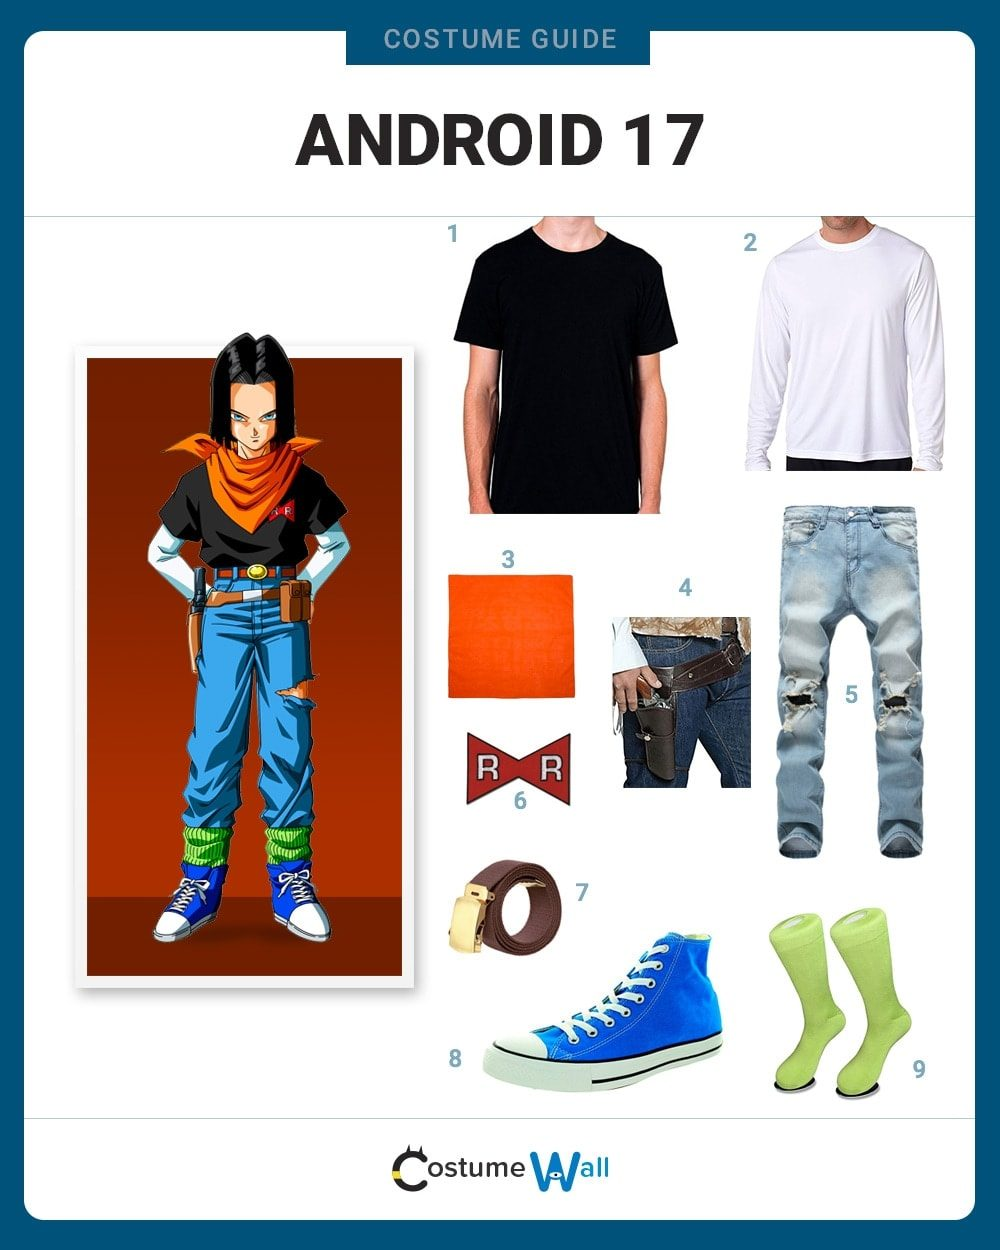 Android 17 Costume Guide